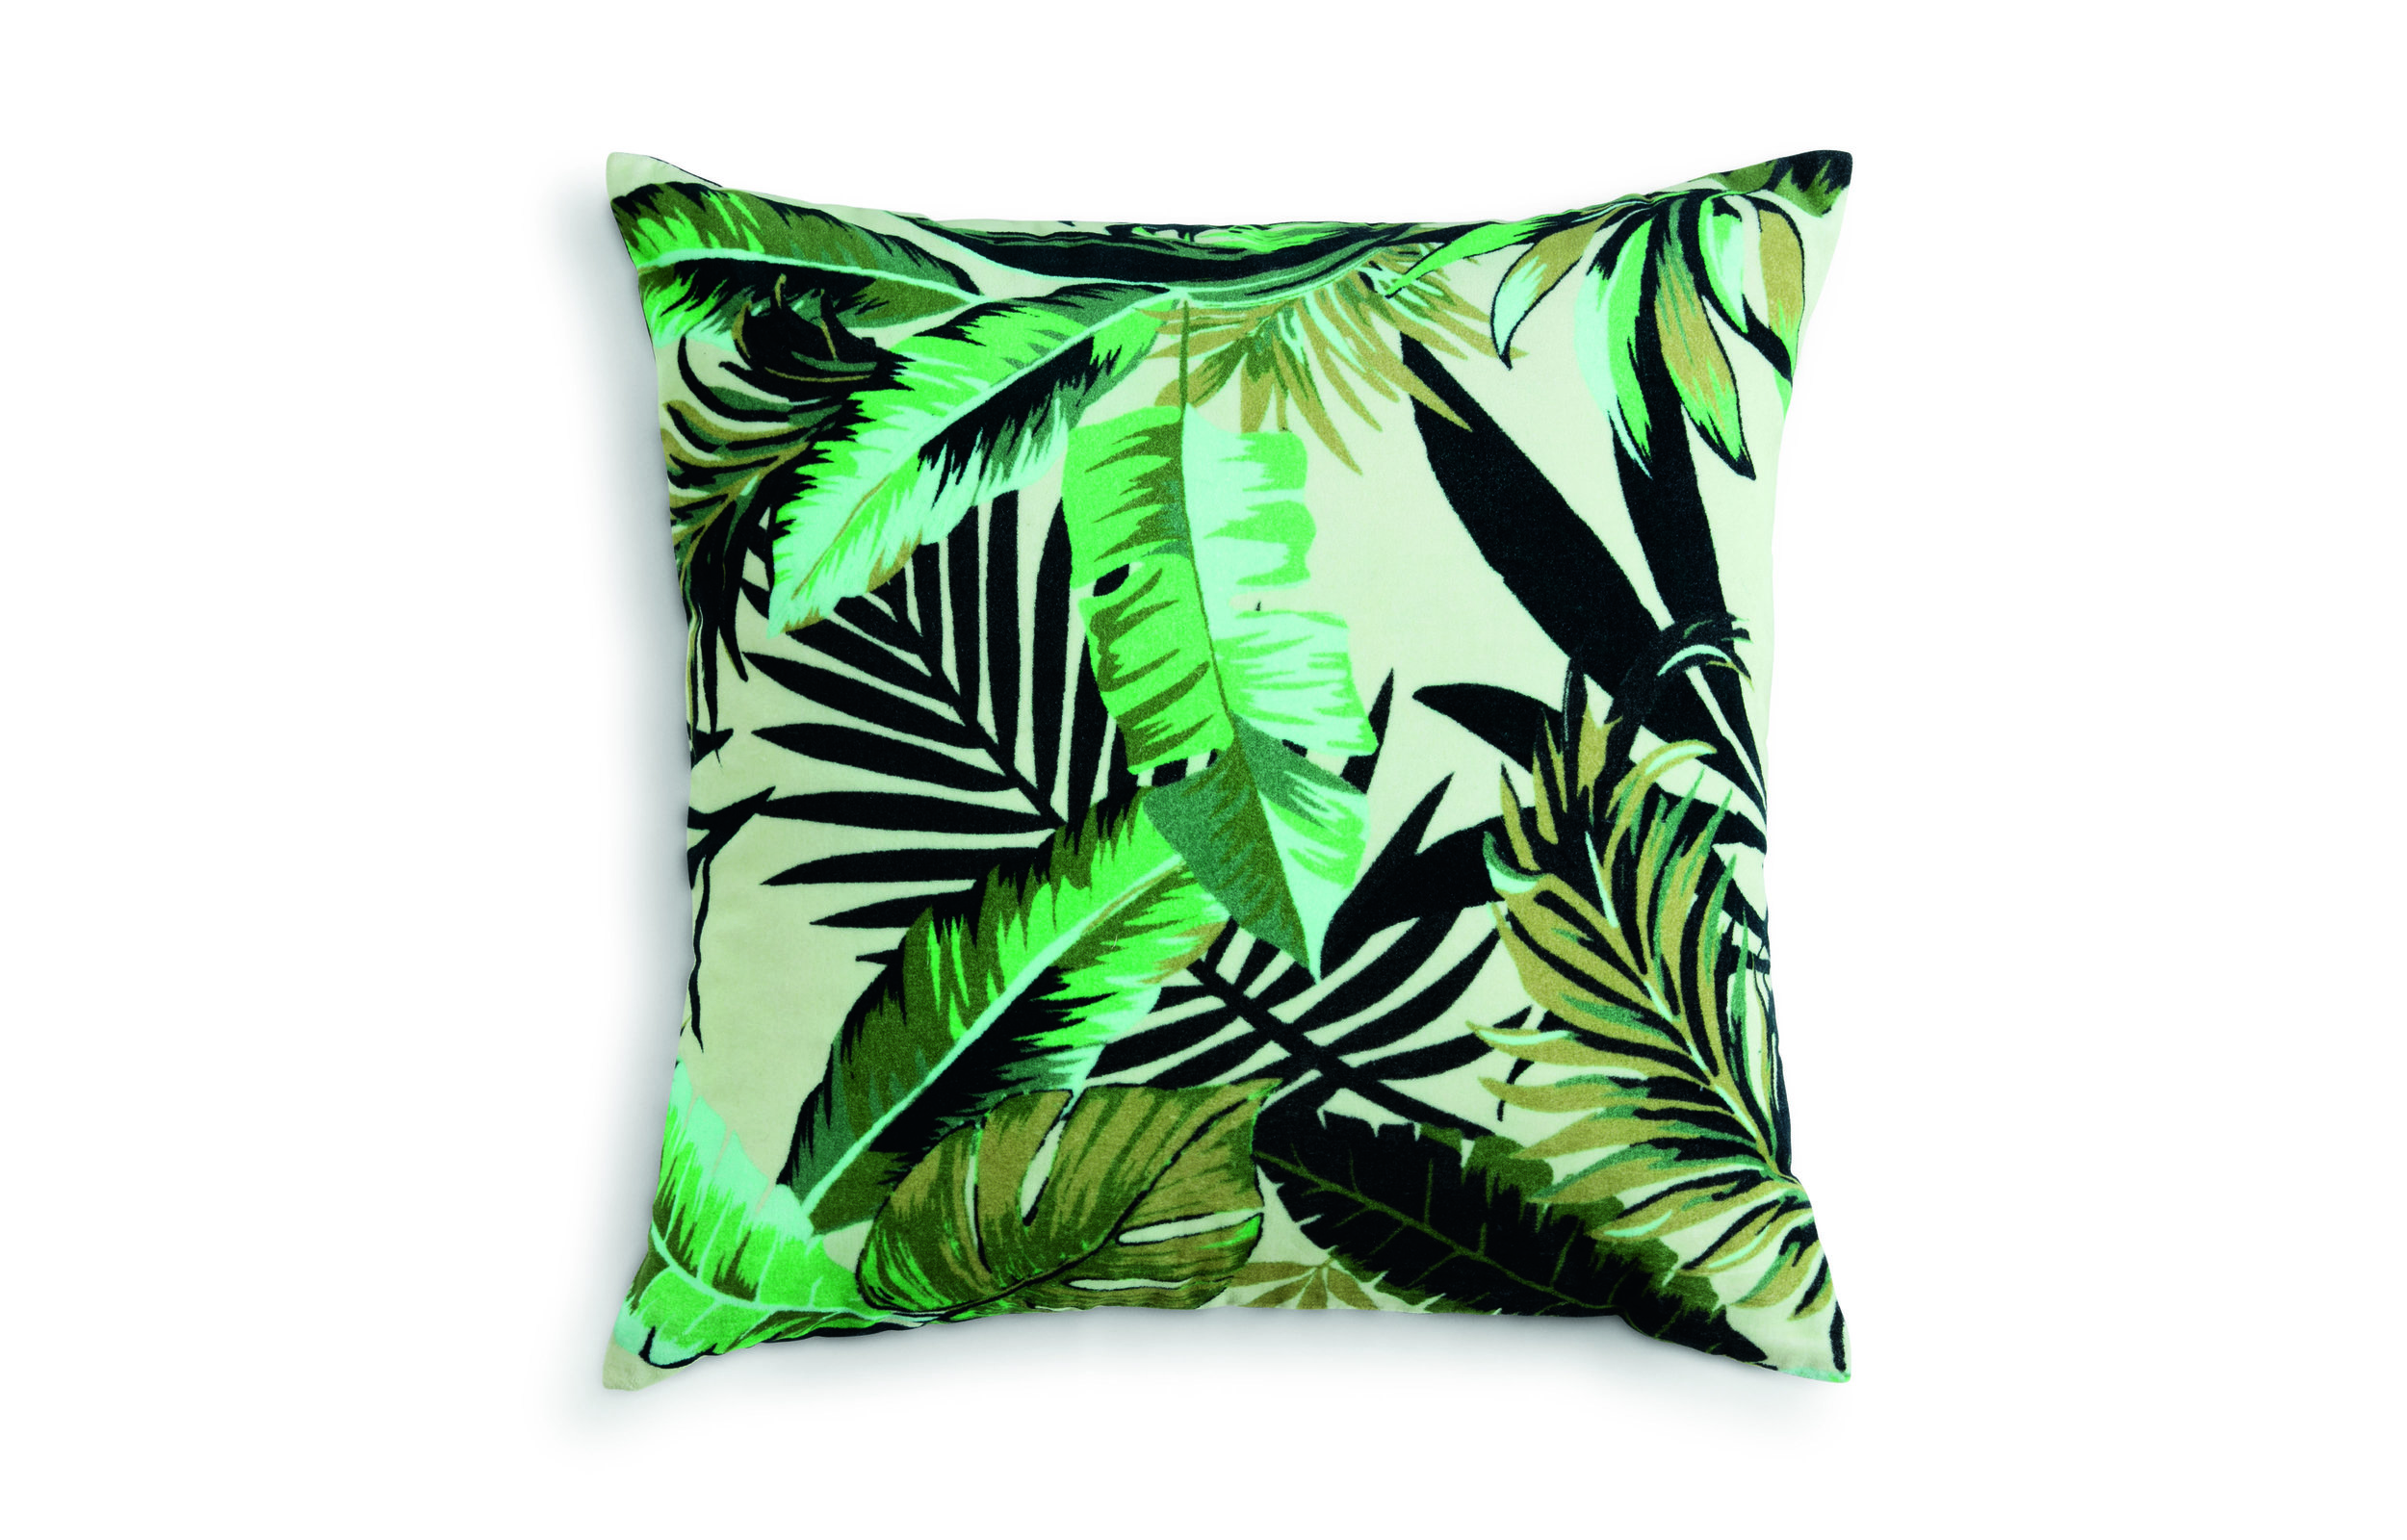 Jangla velvet cushion in leaf green